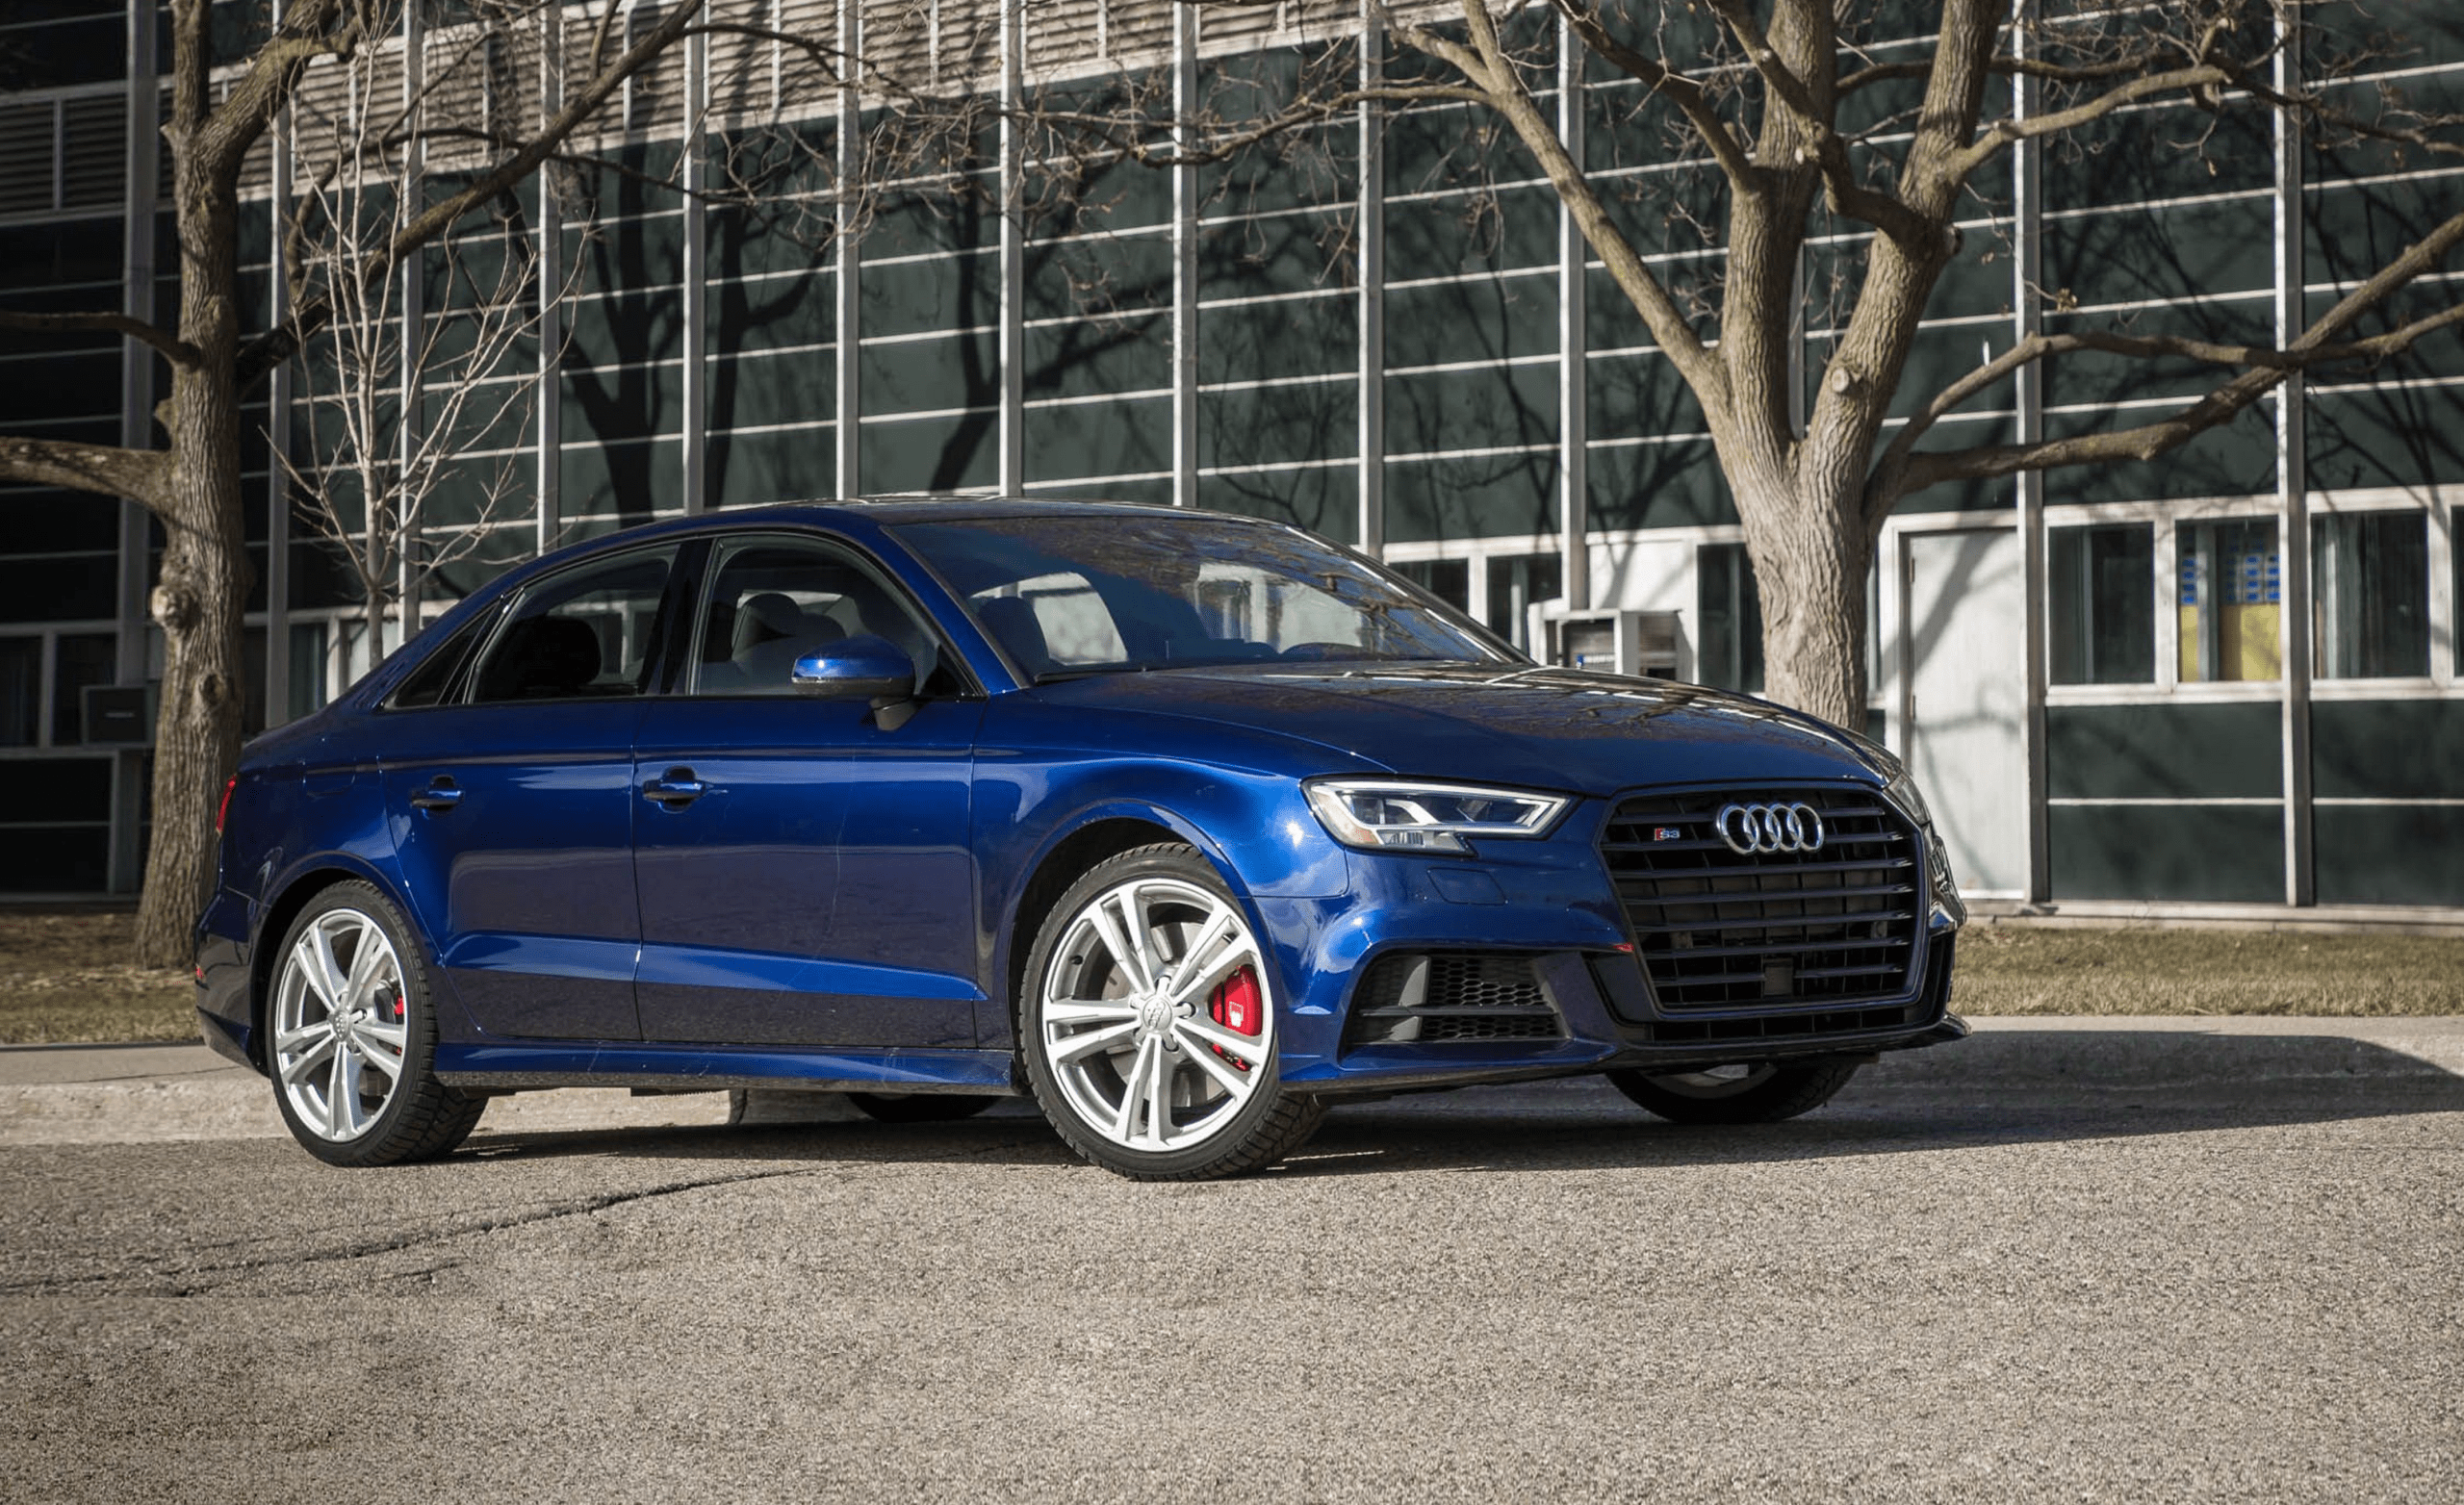 2020 Audi Q5 Suv Price and Review in 2020 Audi, Audi rs3